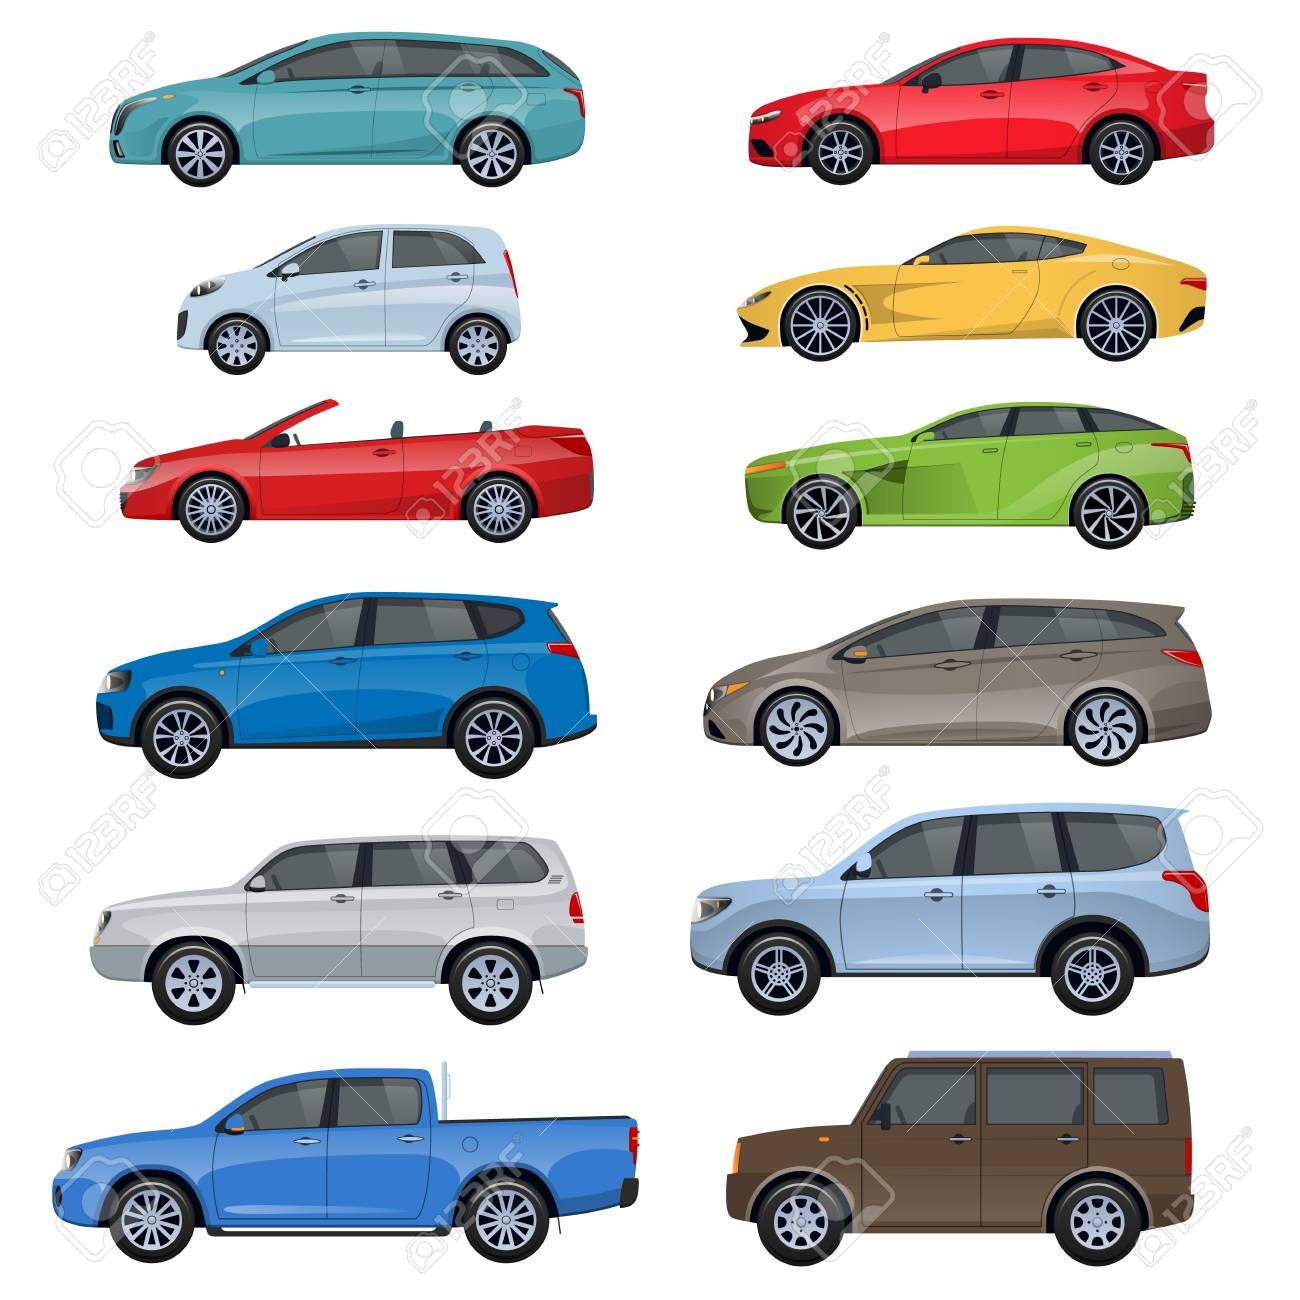 Set Of Different Sports Passenger Off Road Vehicles Passengers Royalty Free Cliparts Vectors And Stock Illustration Image 93323373